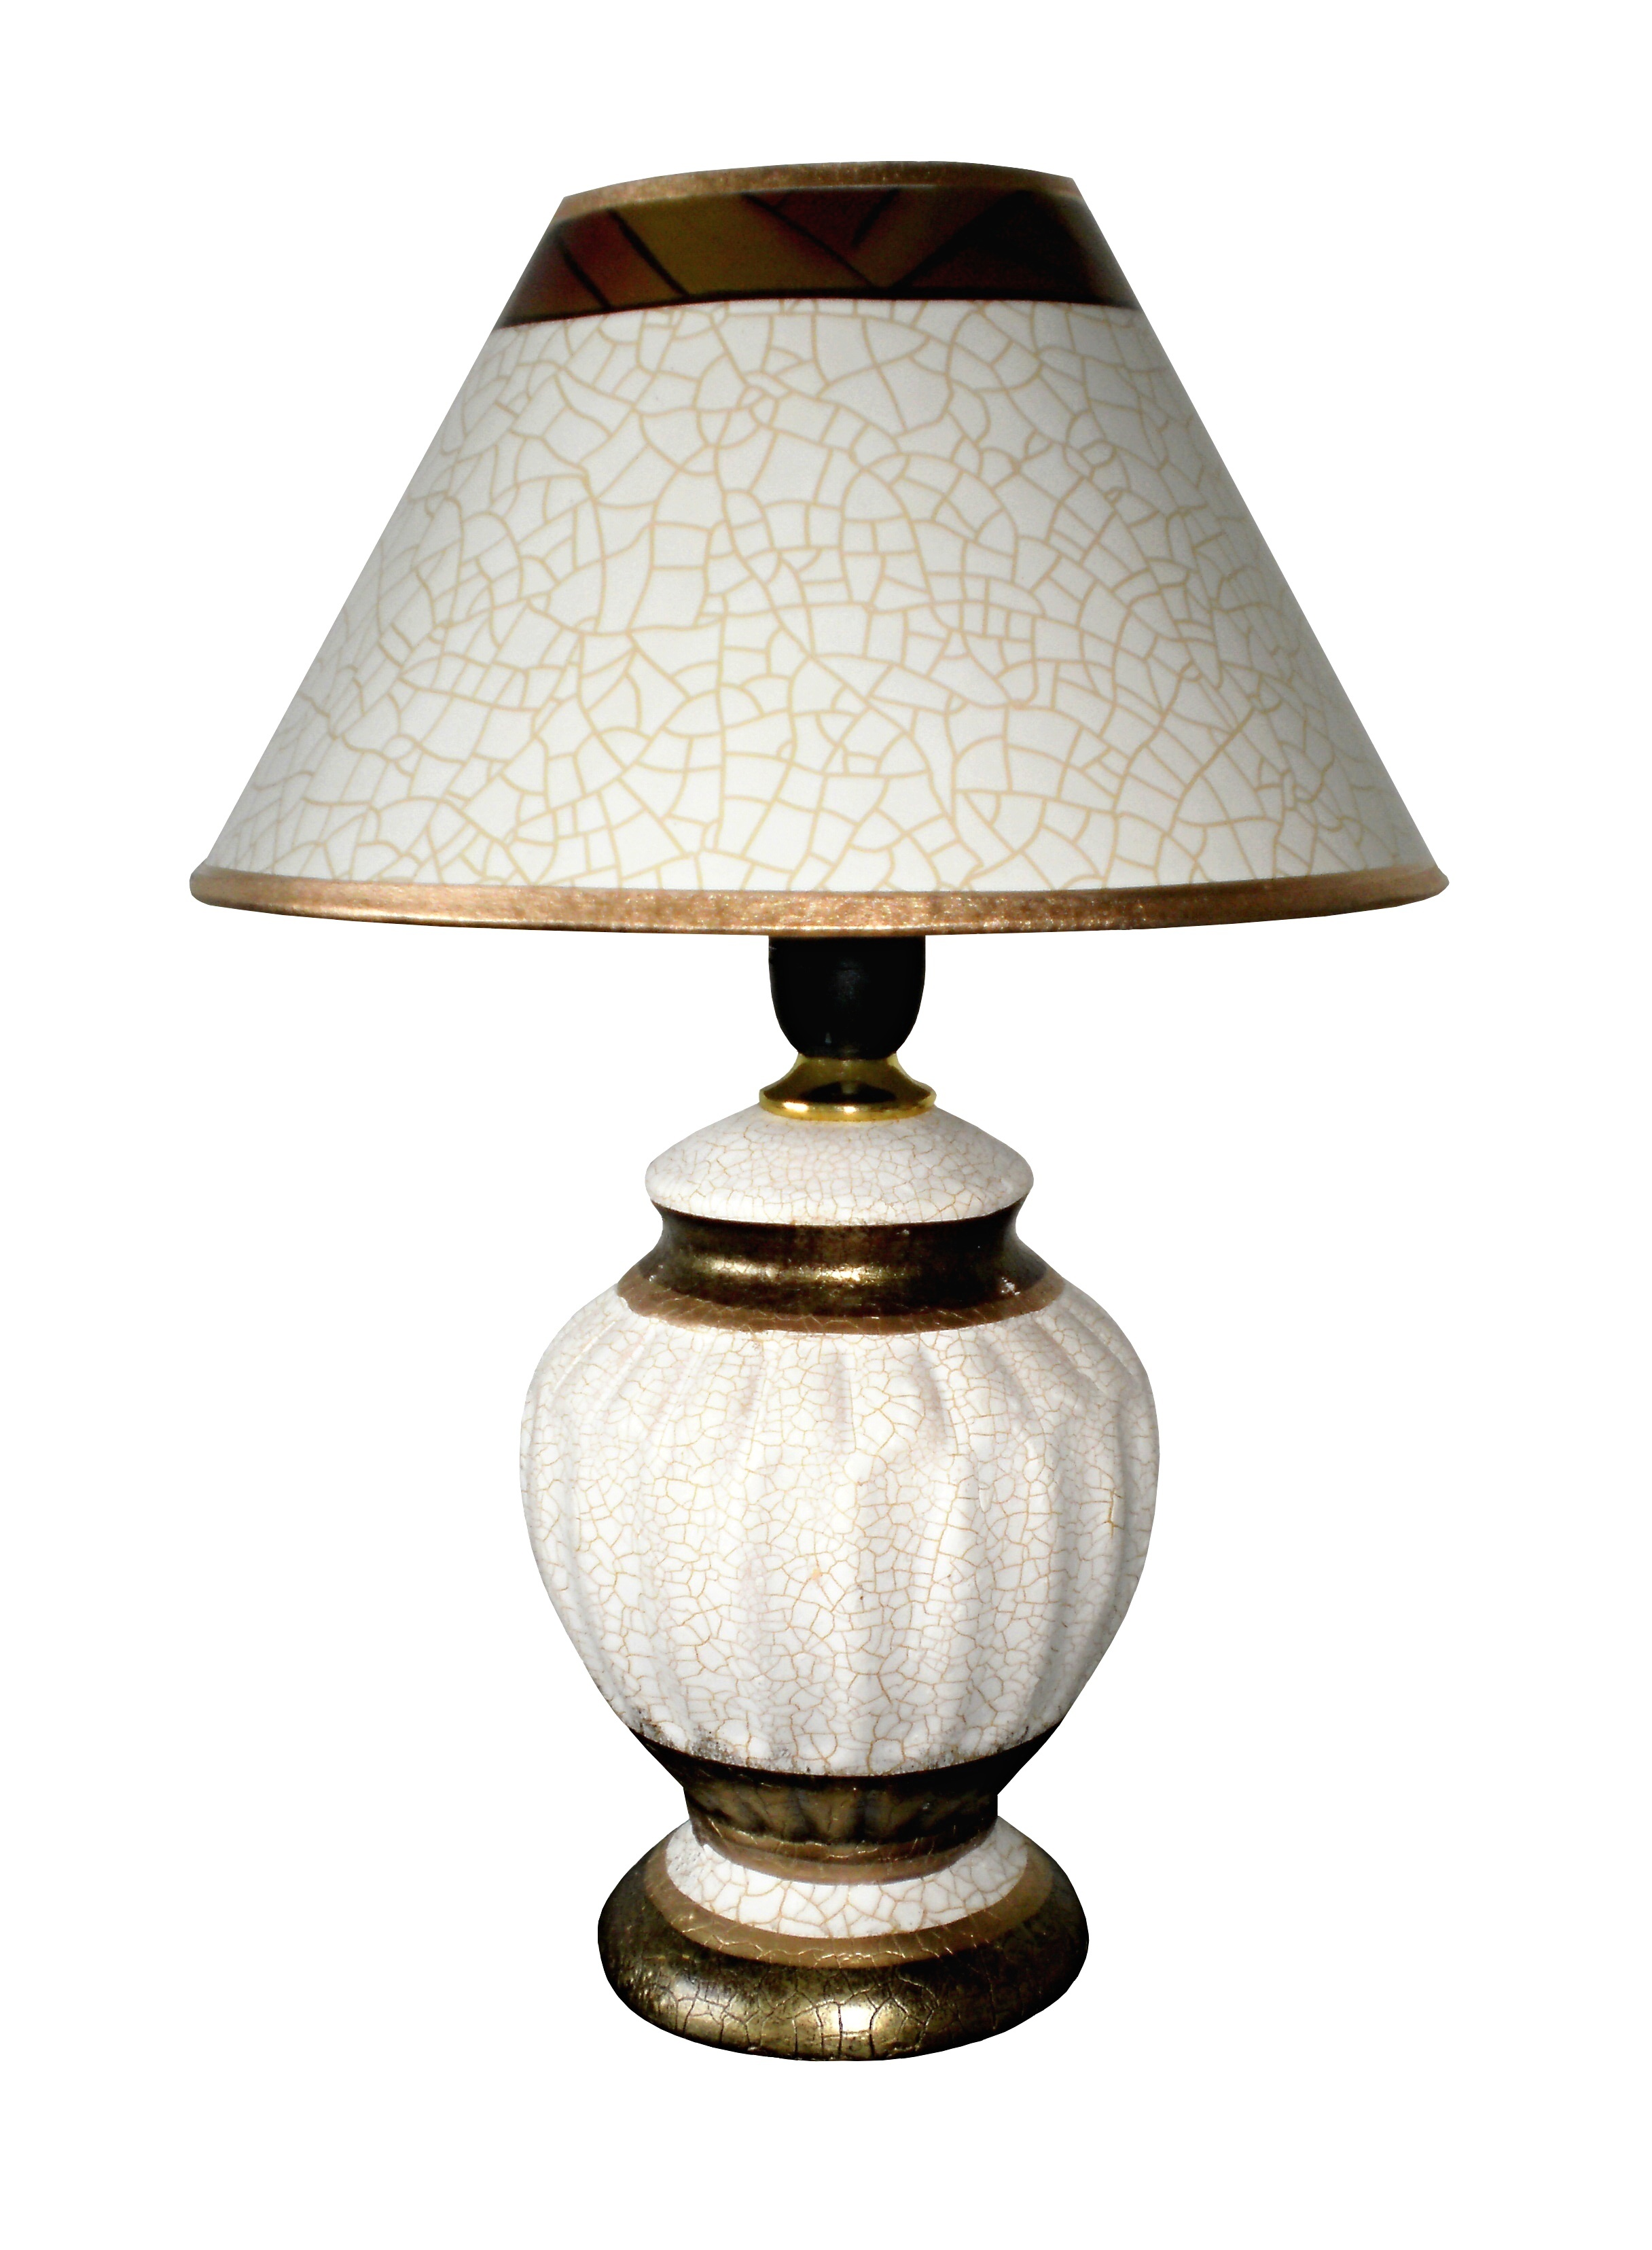 Bedside reading lamps - File White Lamp Jpg Wikimedia Commons